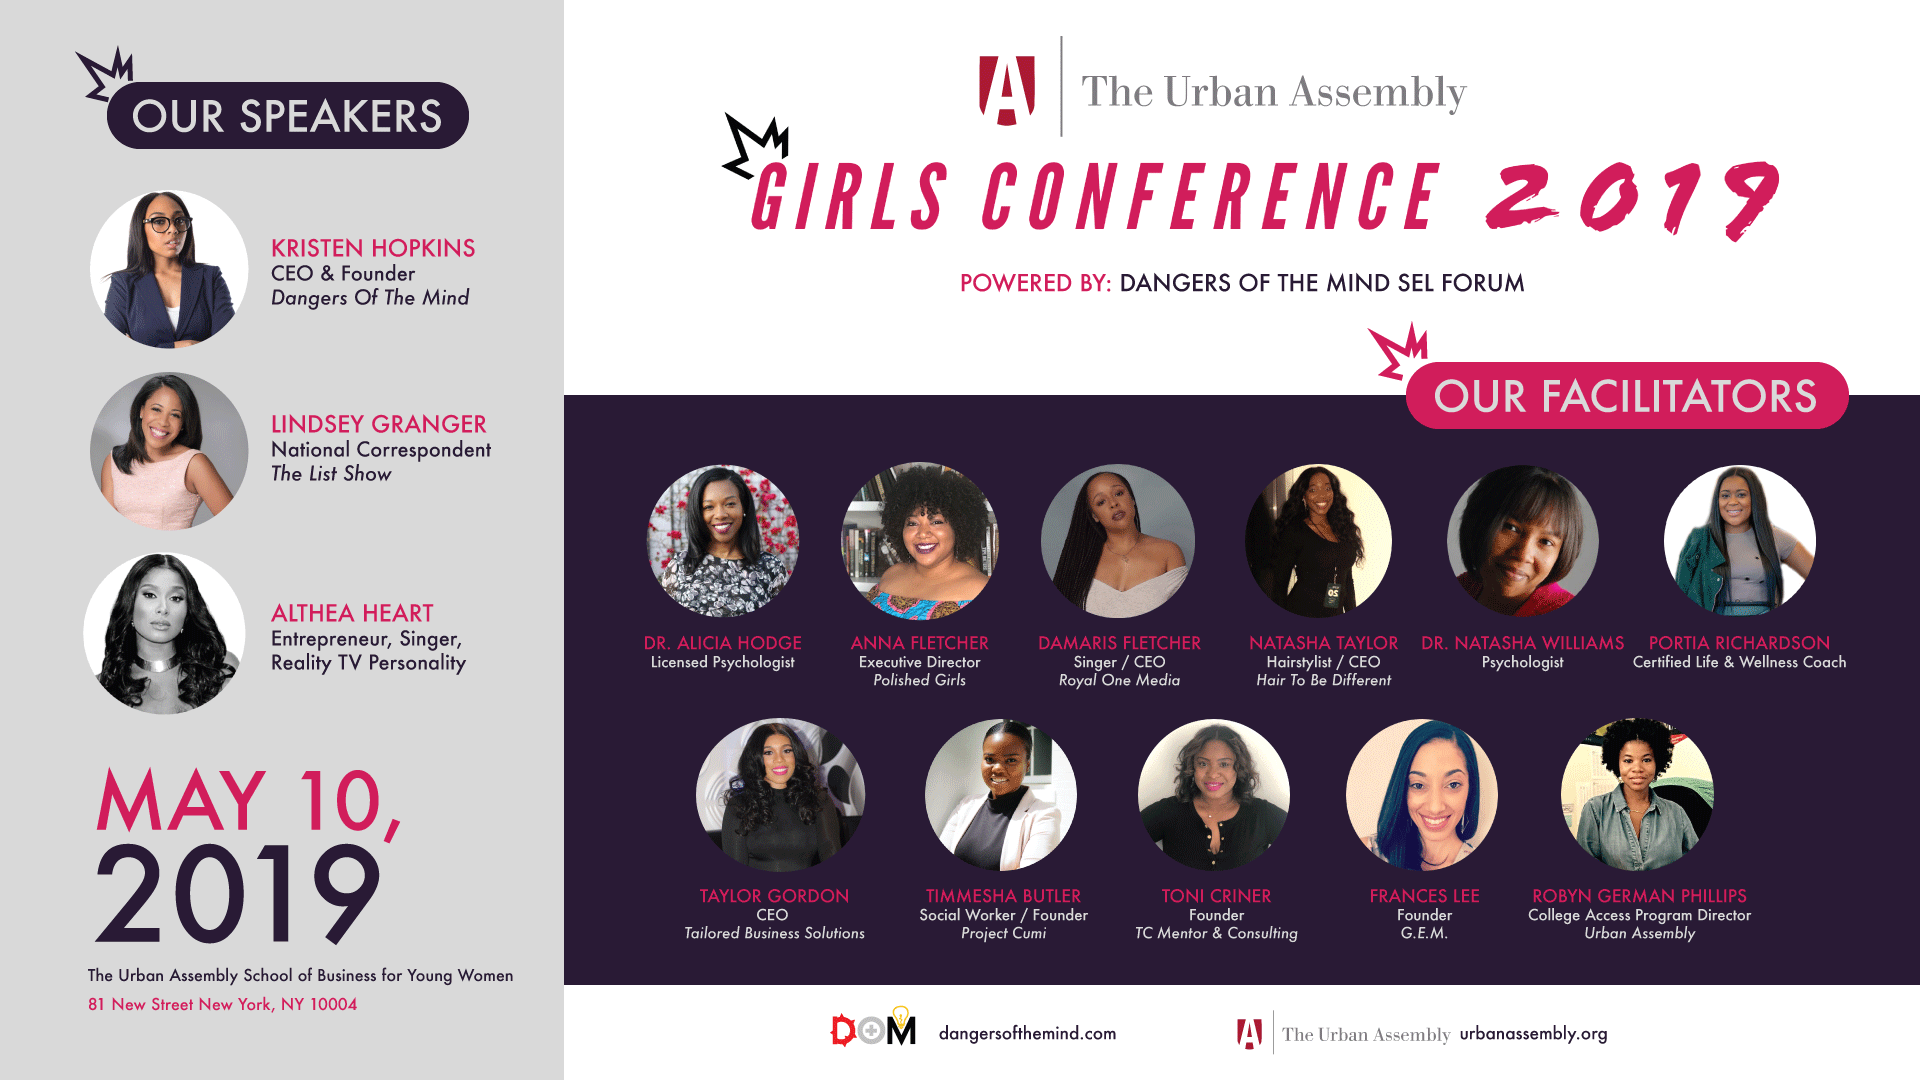 The Business Mogul: Kristen Hopkins, Founder & CEO of Dangers of the Mind has partnered with The Urban Assembly (UA) to host a Youth Girls Conference with a Social Emotional Learning Forum